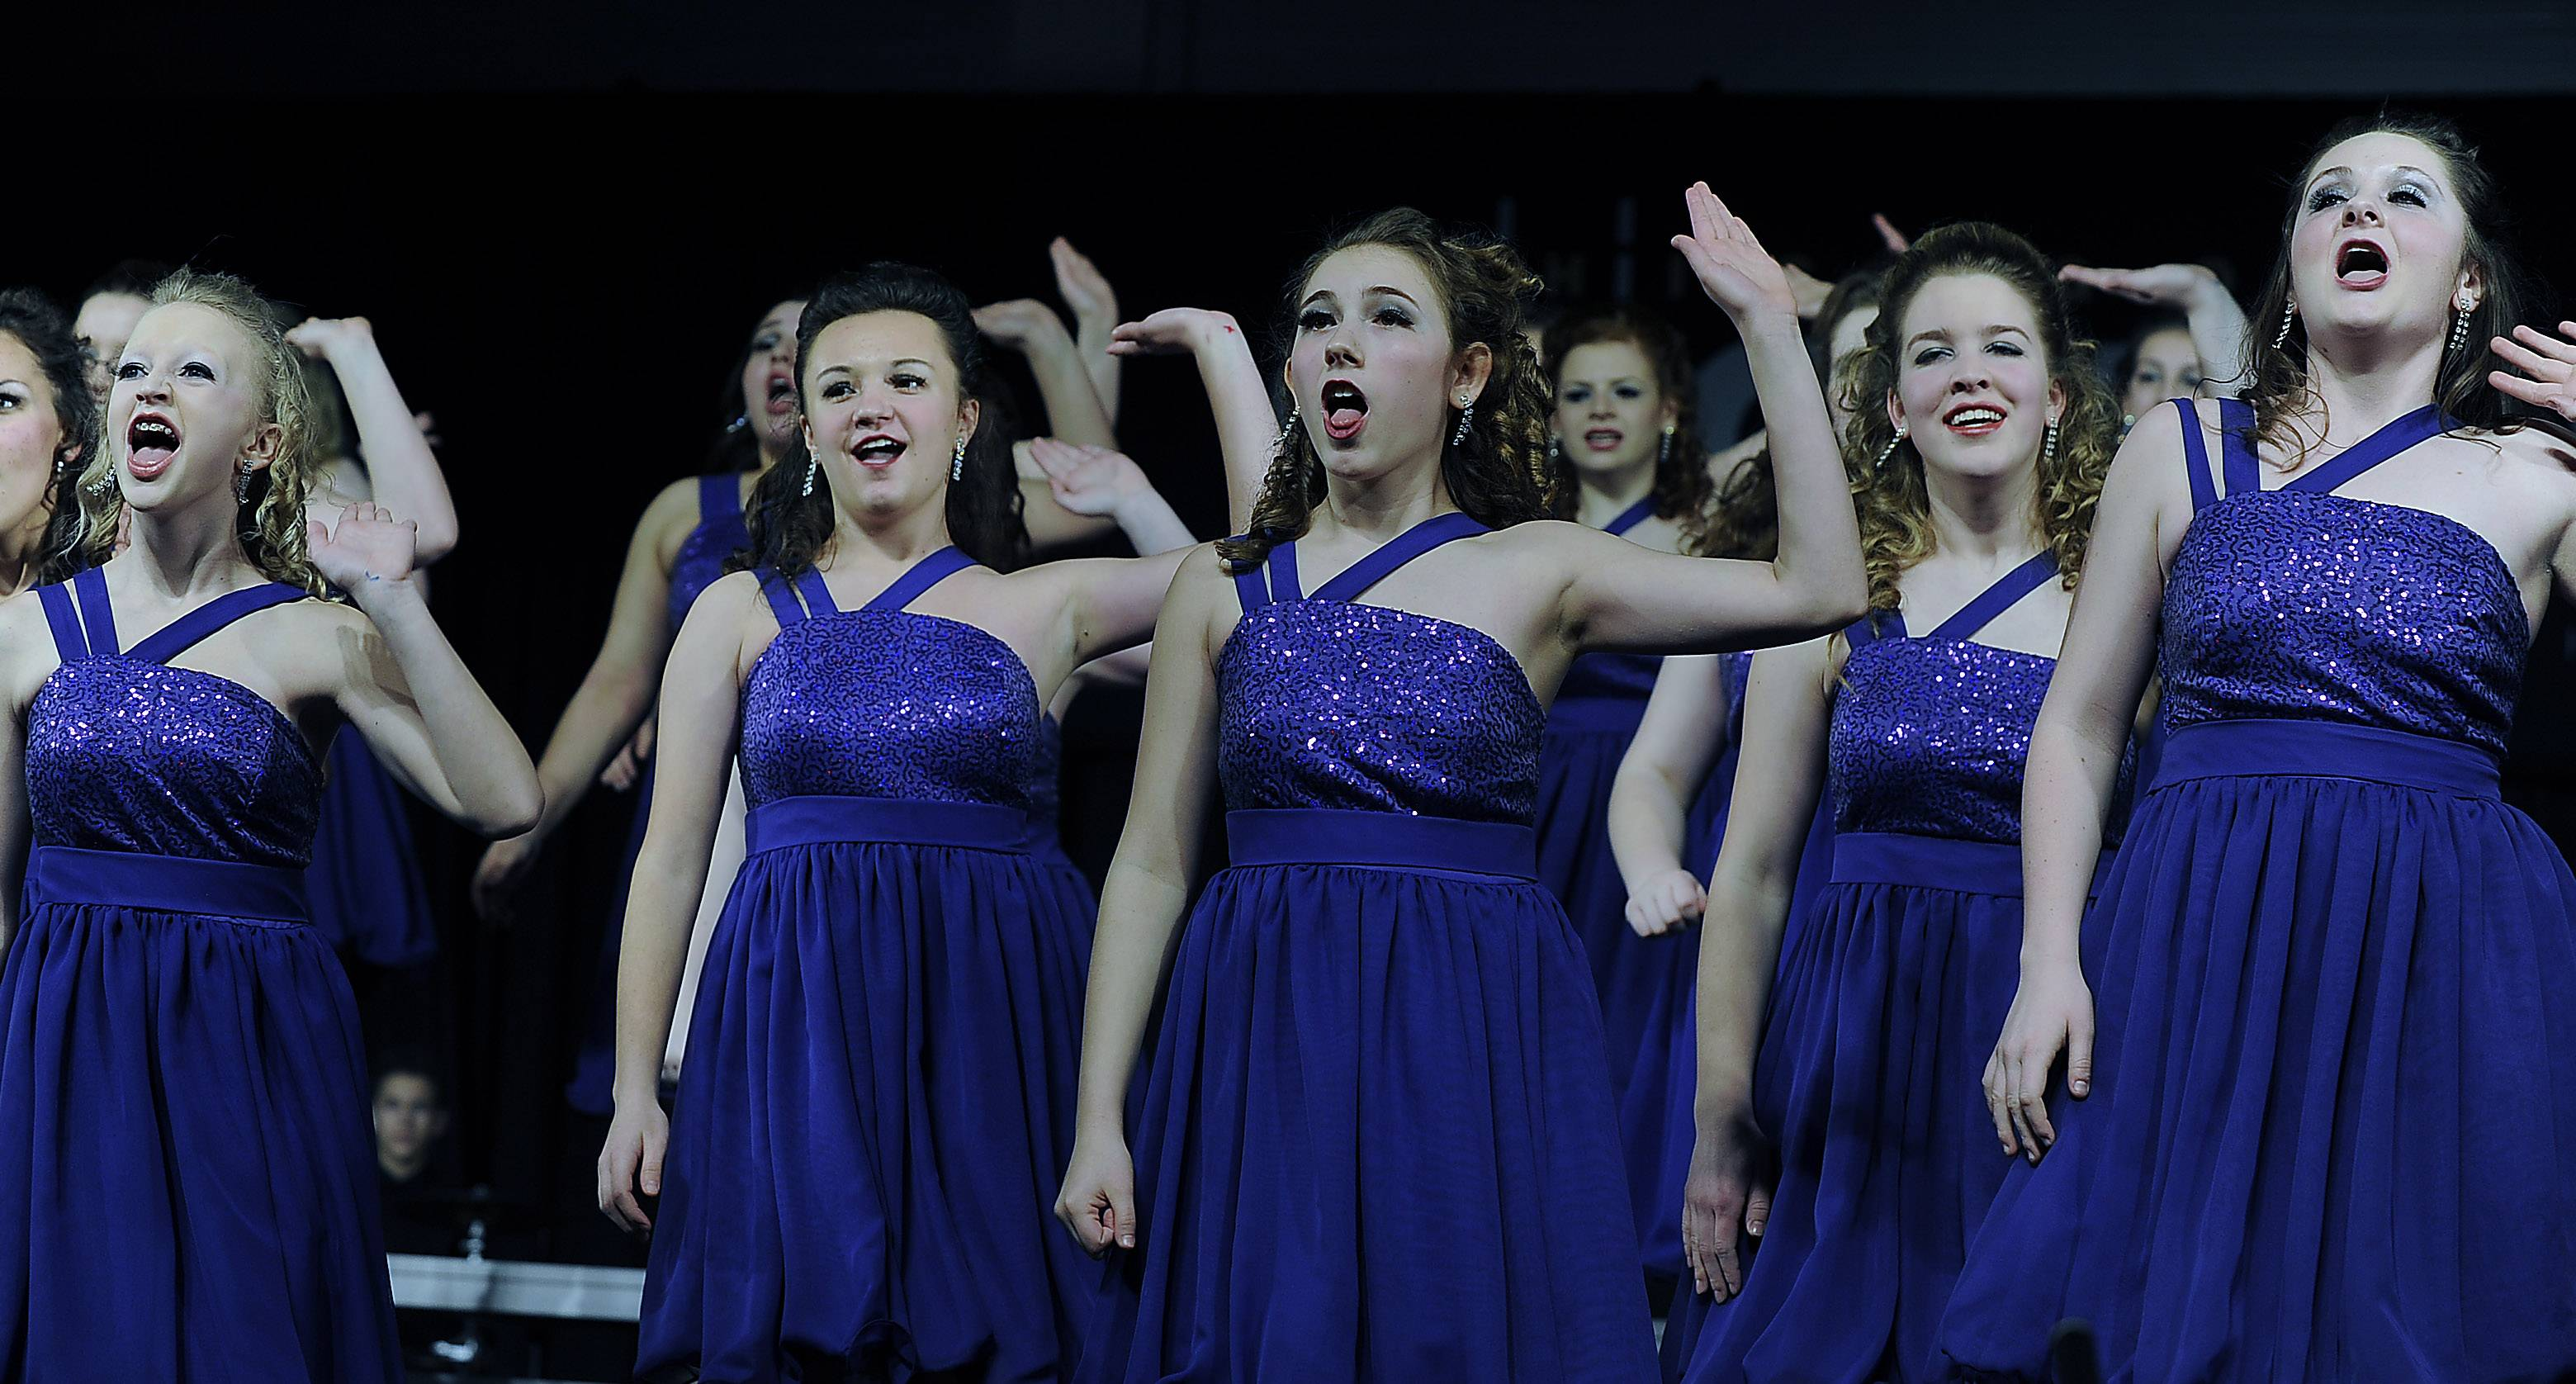 Members of the Batavia High School choir Legacy at the Chicagoland Showcase 2014 at Hersey High School on Saturday.